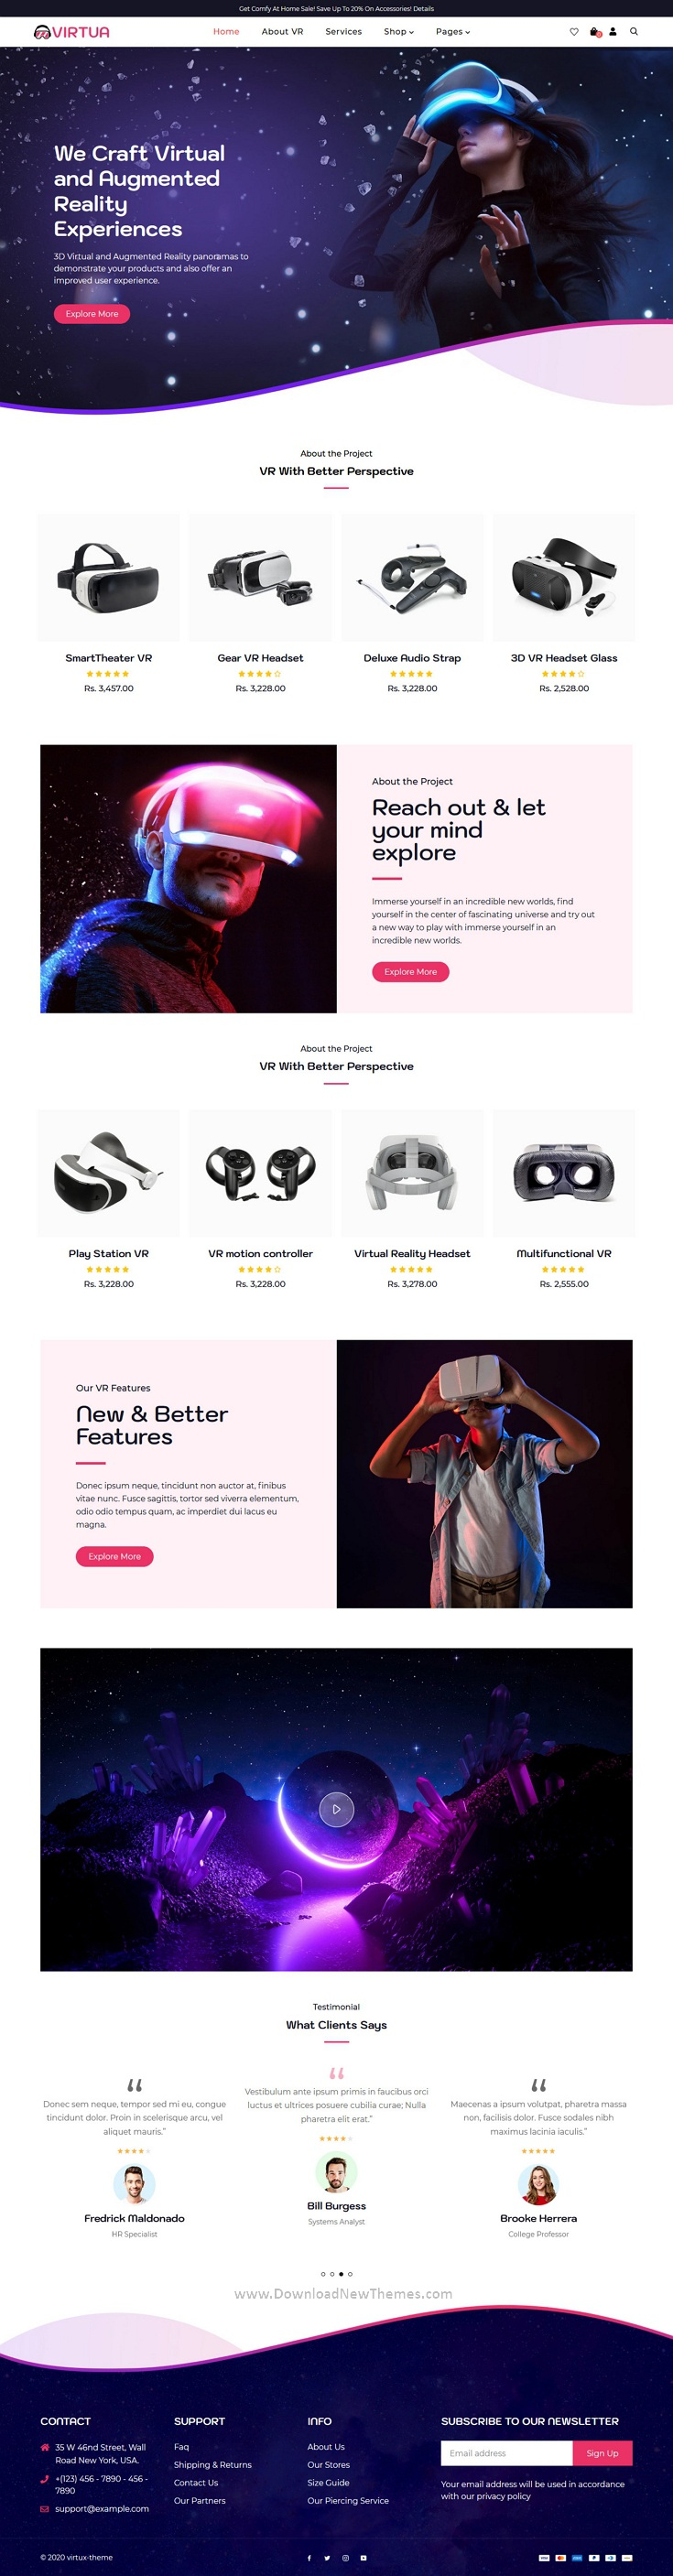 Best Single Product Shop Shopify Theme